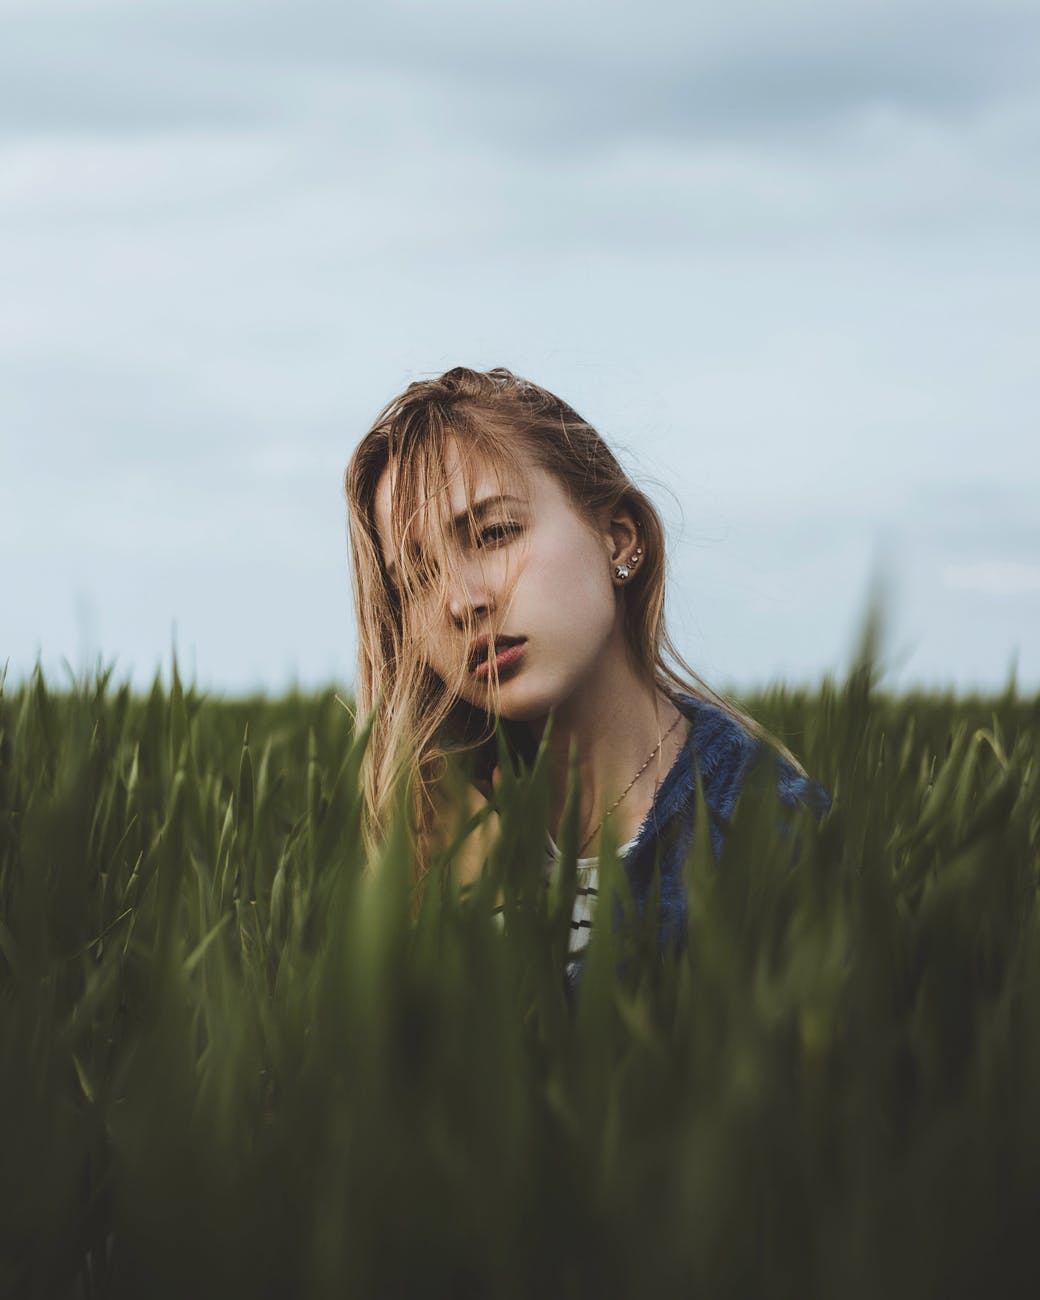 tranquil woman sitting in tall grass